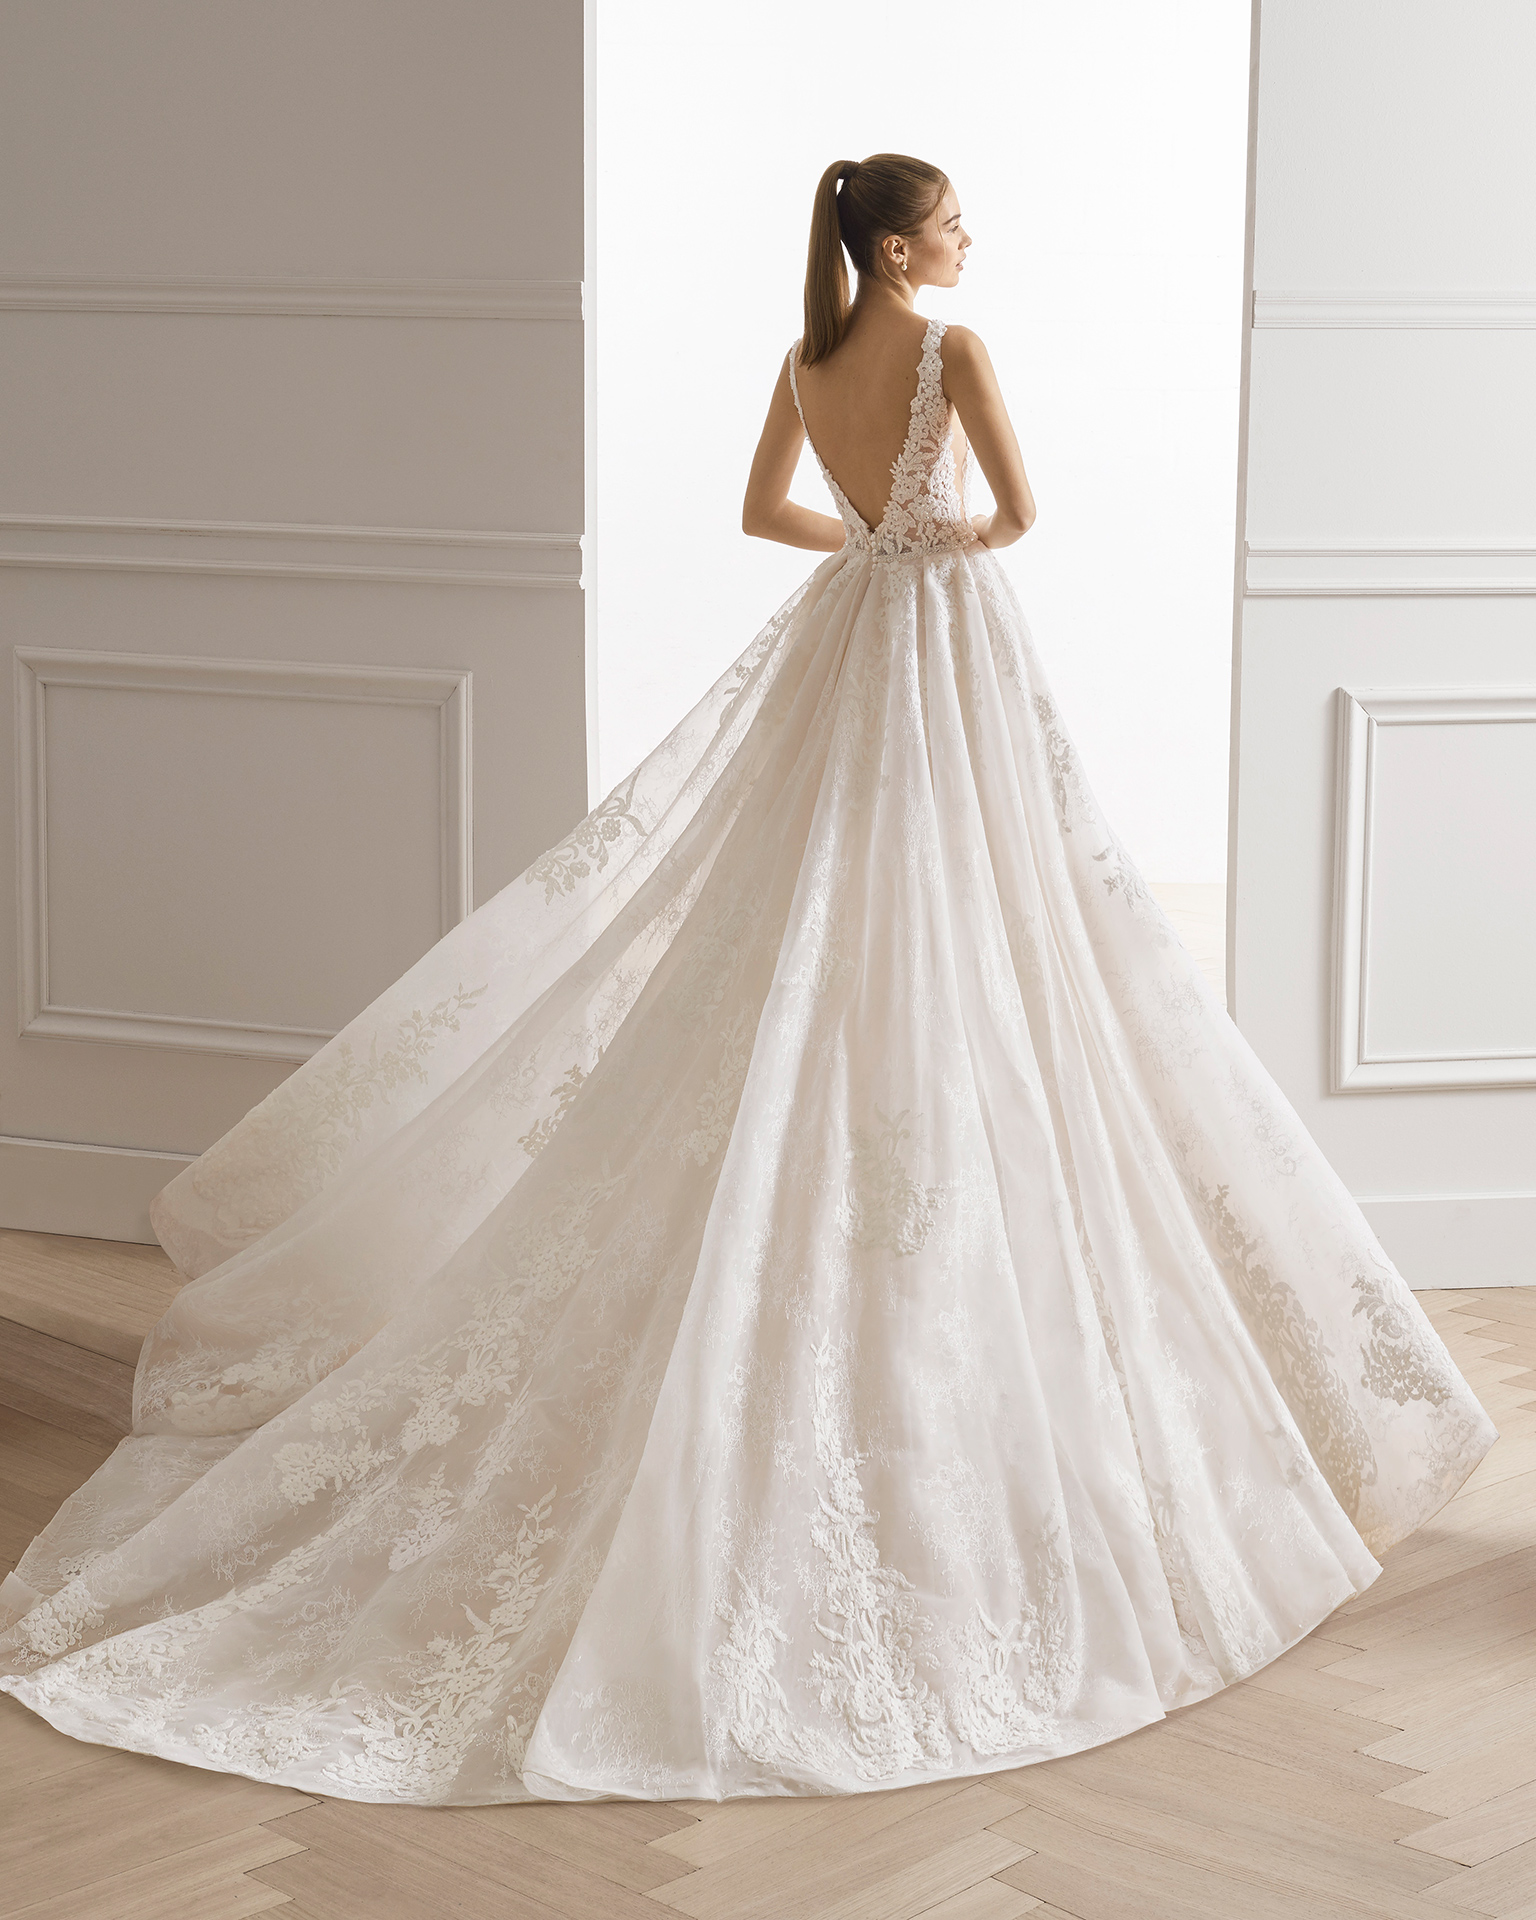 Robe de mariée style princesse en dentelle et pierreries. Col et dos en V avec jupe créant un grand volume. Disponible en couleur naturelle/nude. Collection AIRE BARCELONA 2019.